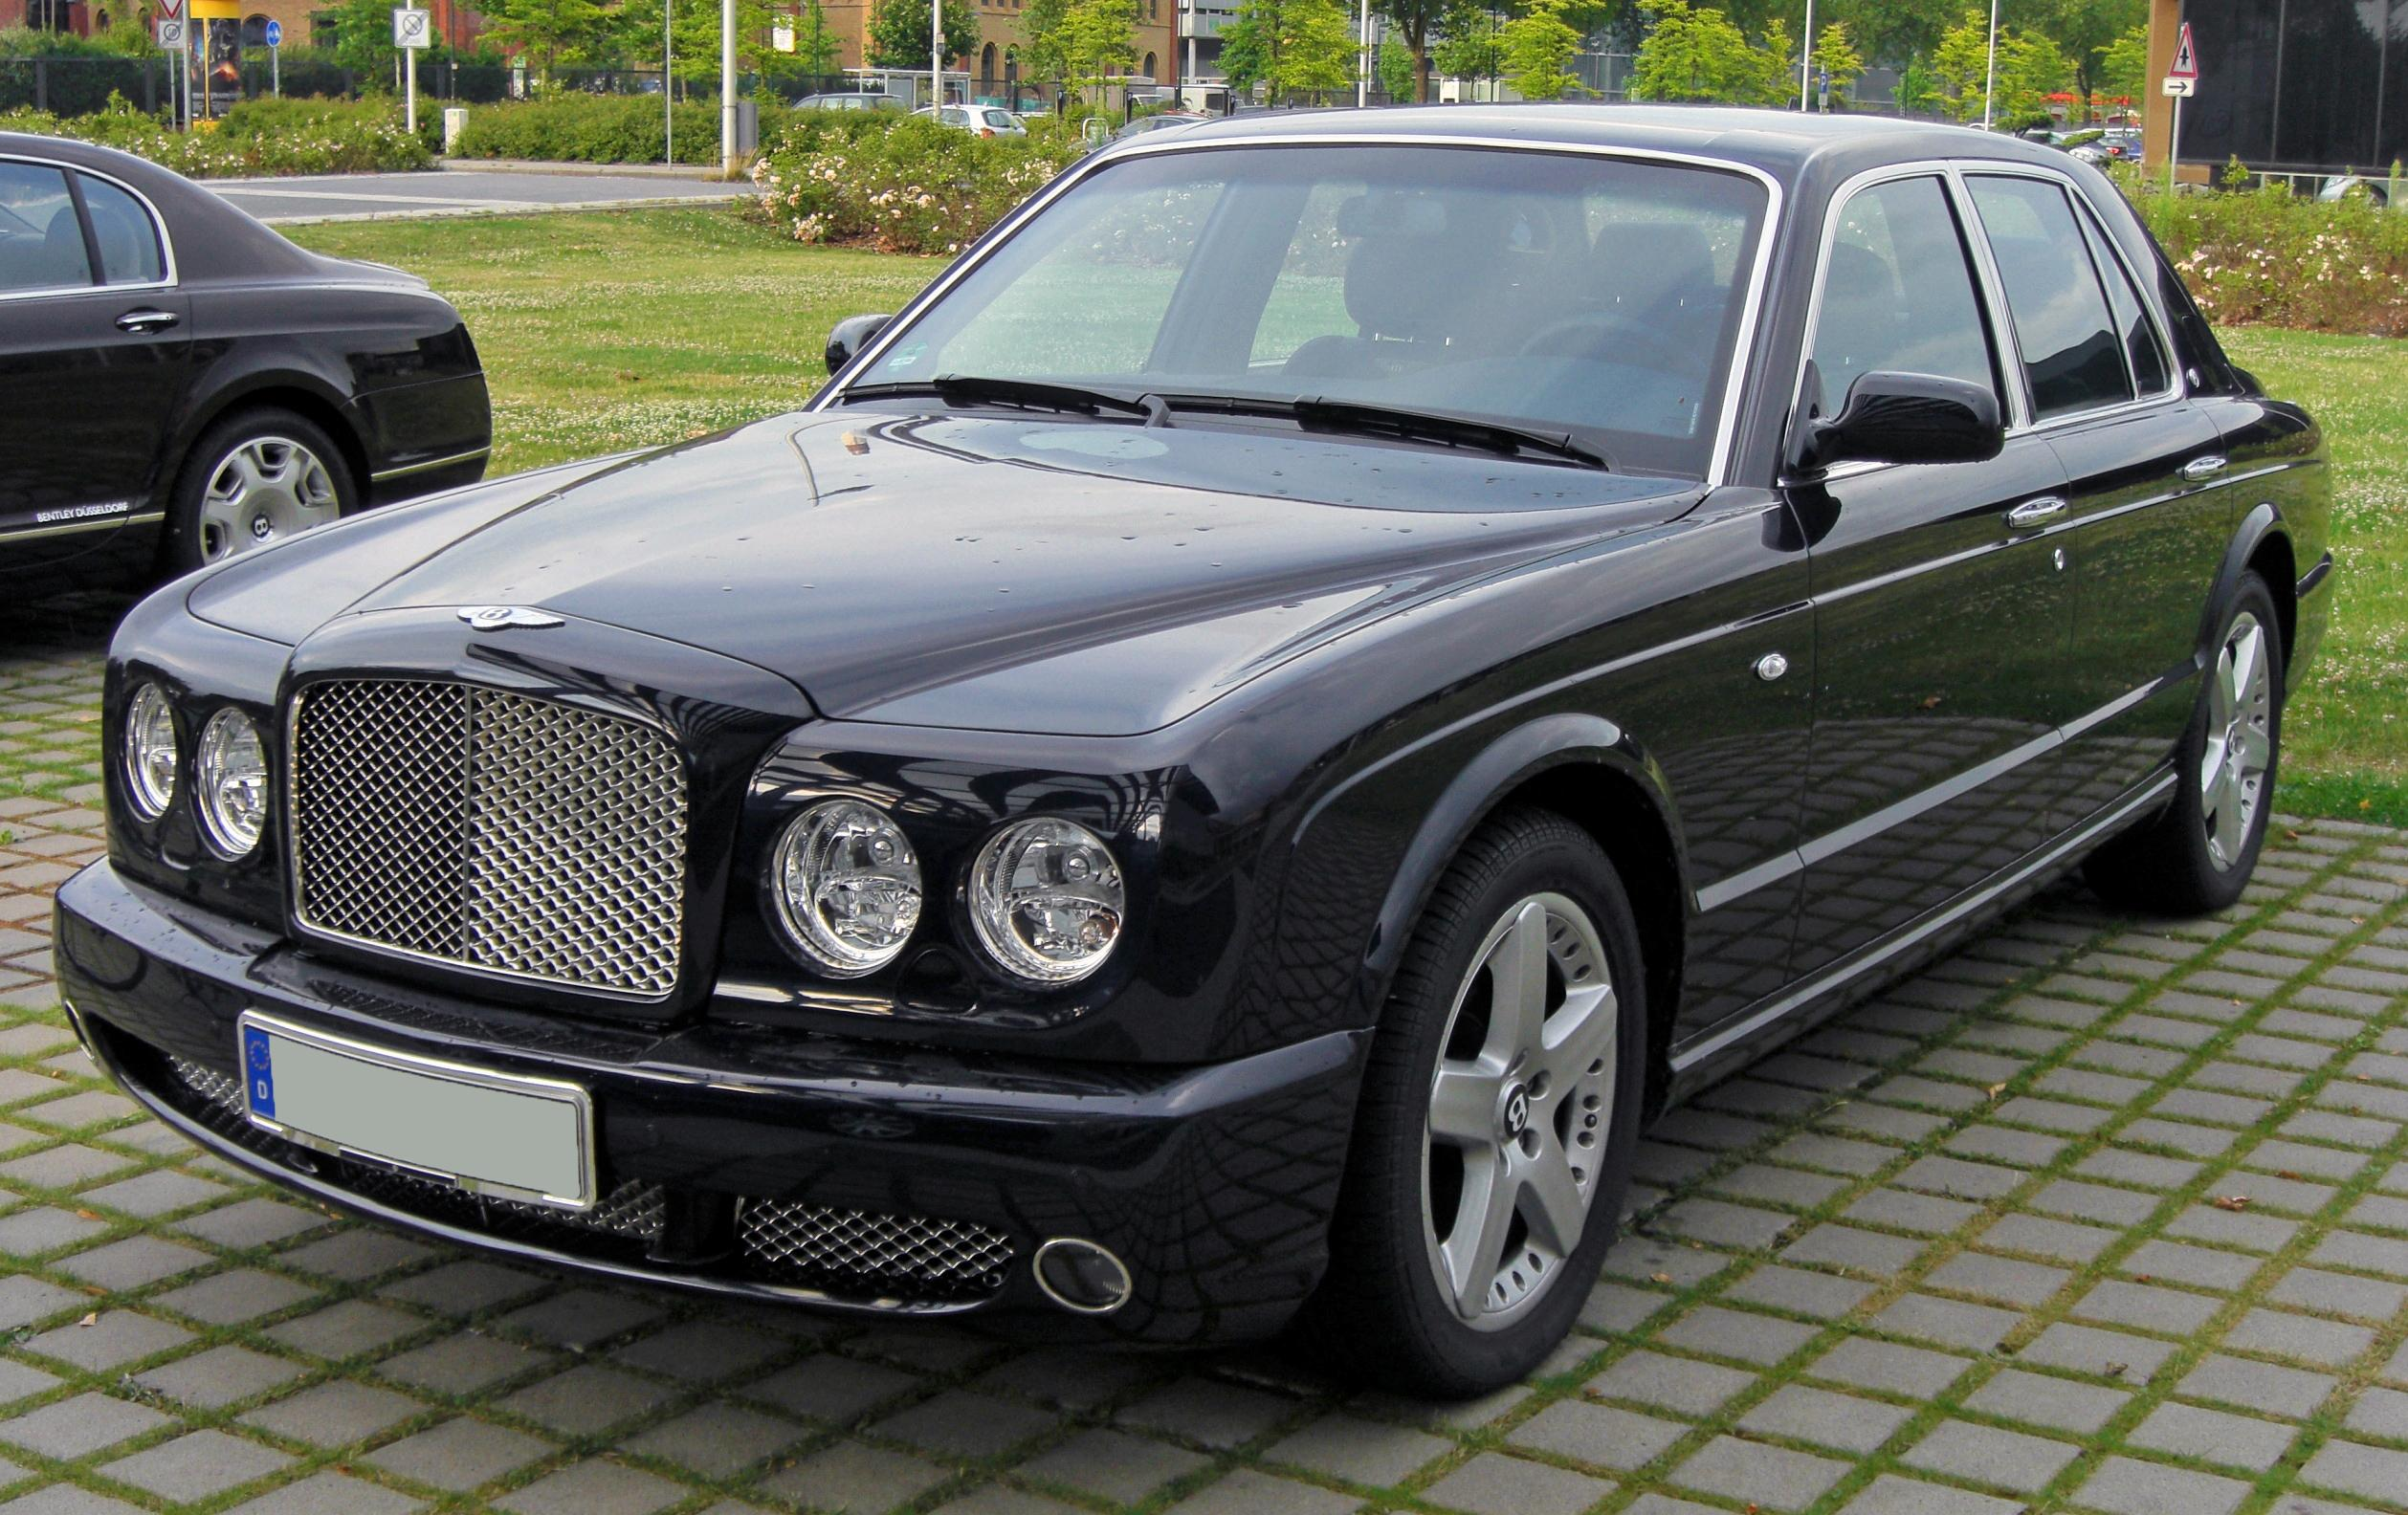 file bentley arnage t limited edition mariner no 3 of 6 20090706 front jpg wikimedia commons. Black Bedroom Furniture Sets. Home Design Ideas